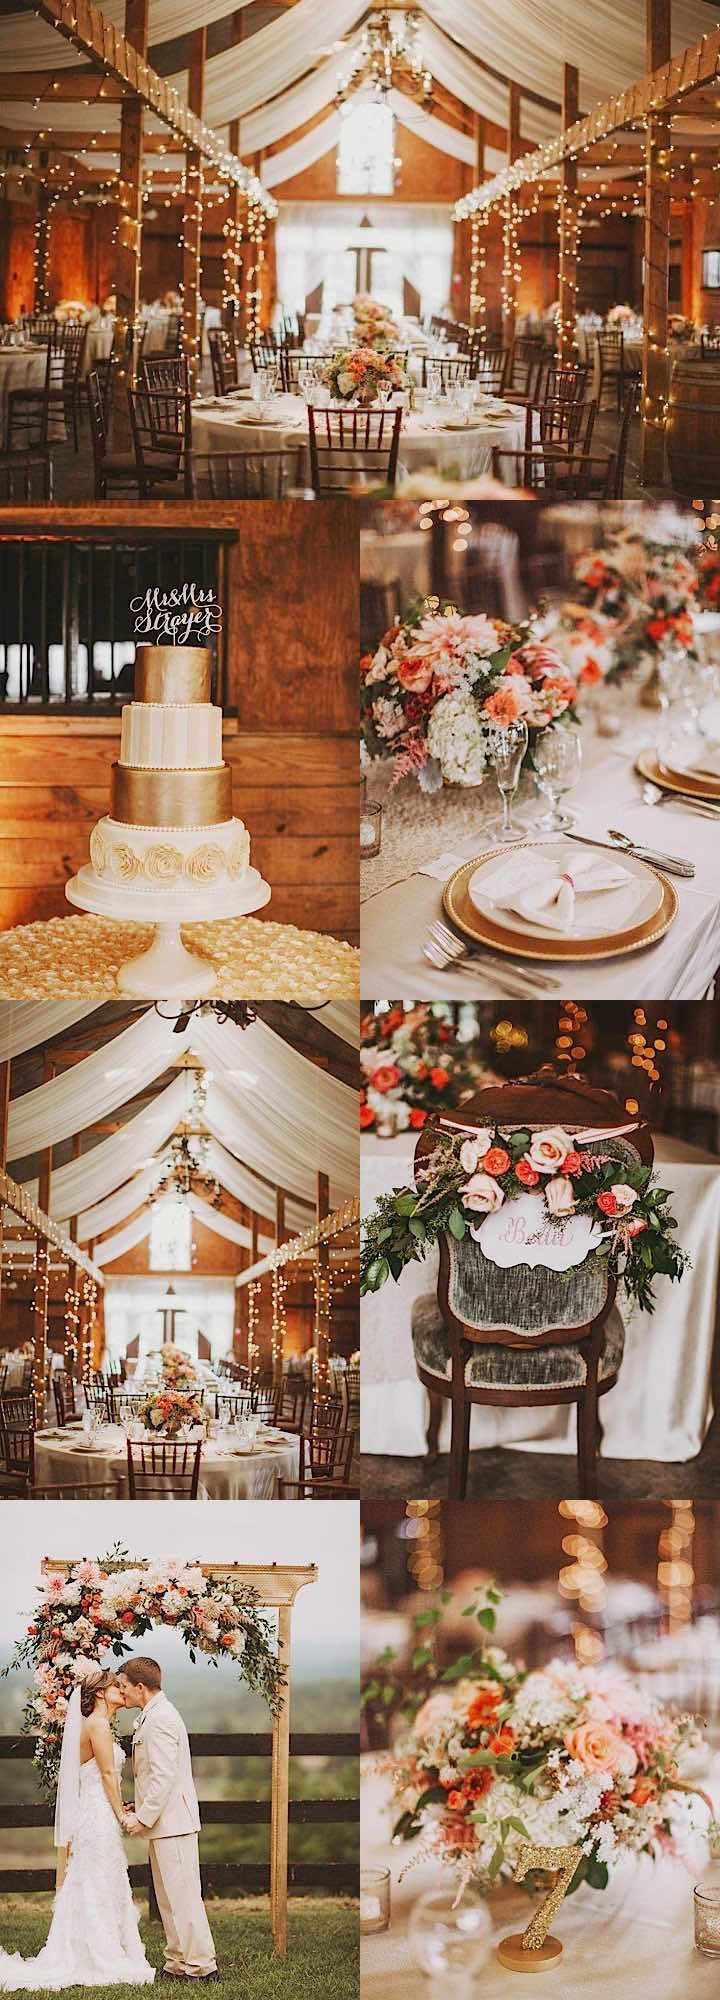 virginia-wedding-collage-03282015-ky